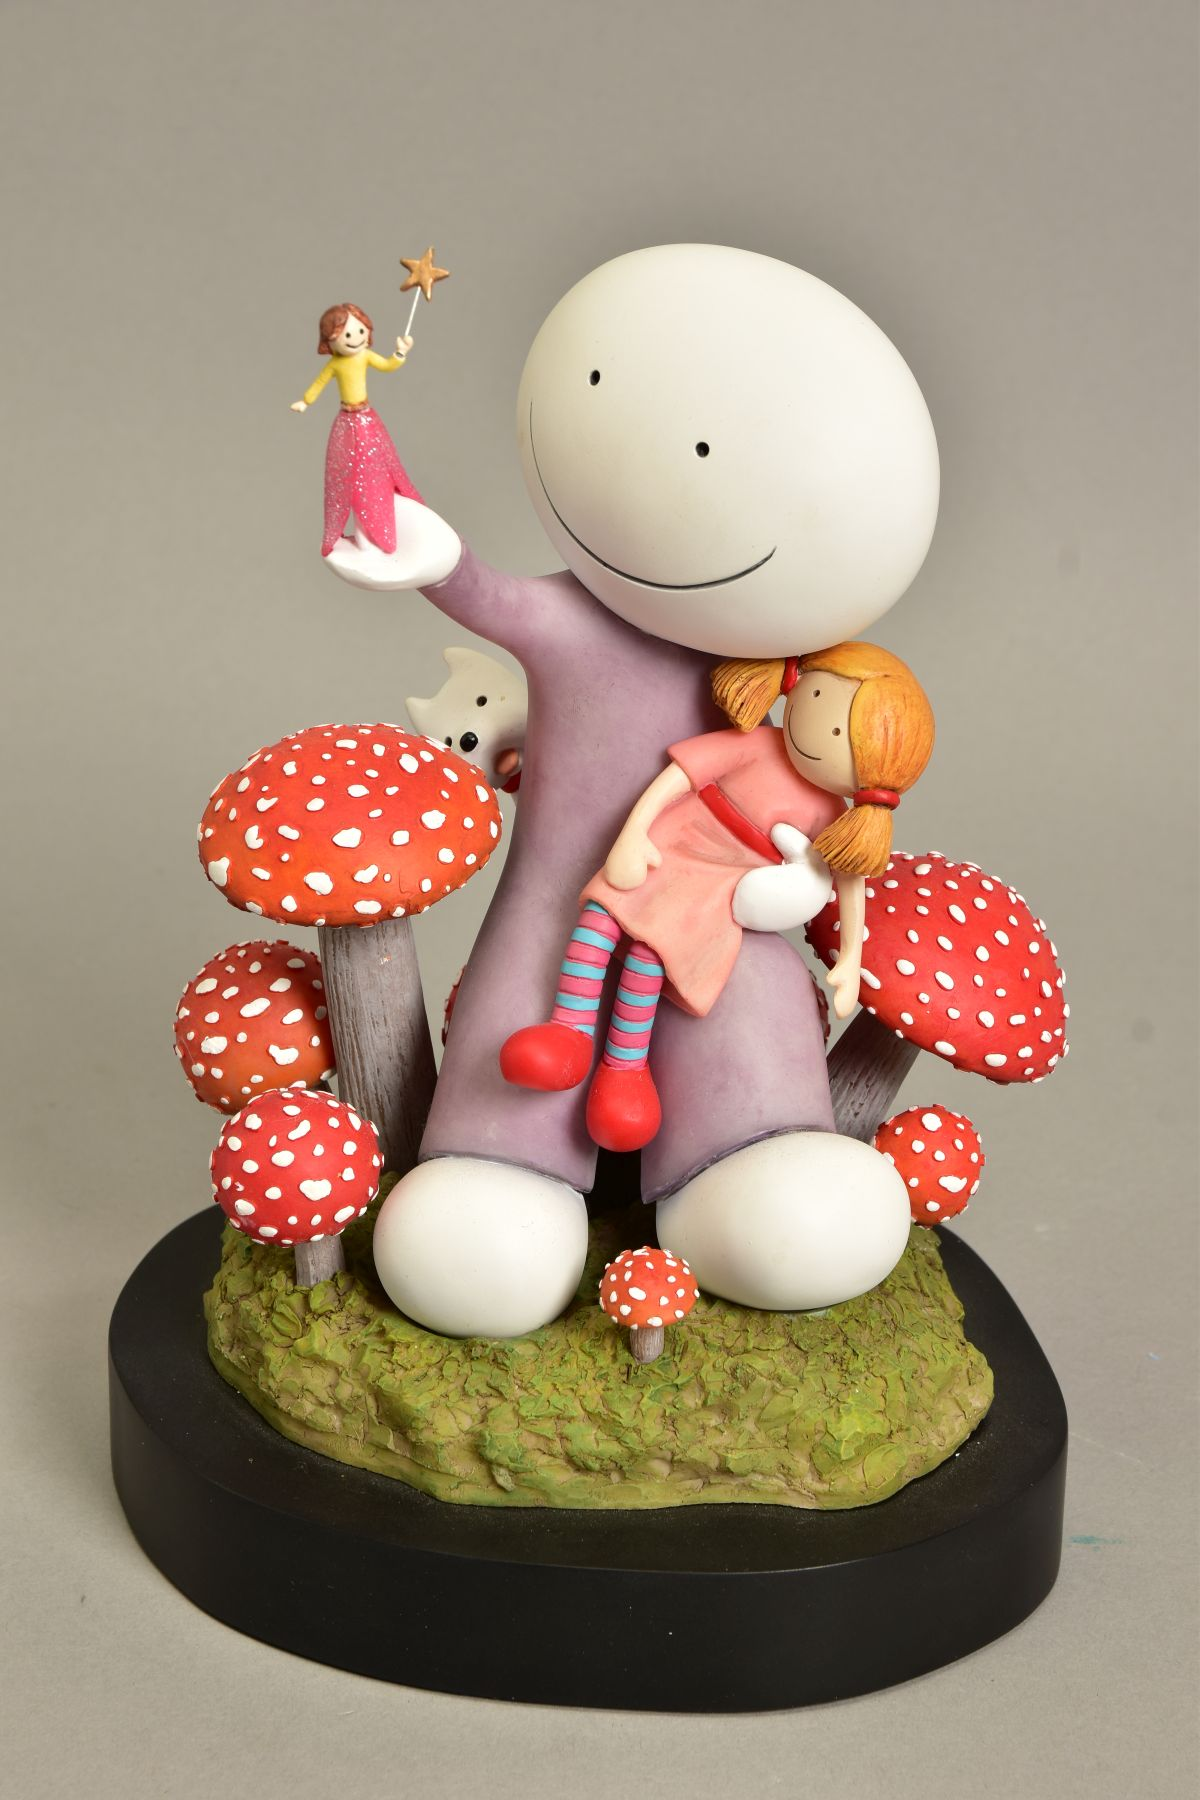 DOUG HYDE (BRITISH 1972) 'MAKE A WISH', limited edition sculpture of a girl and her doll, - Image 2 of 10